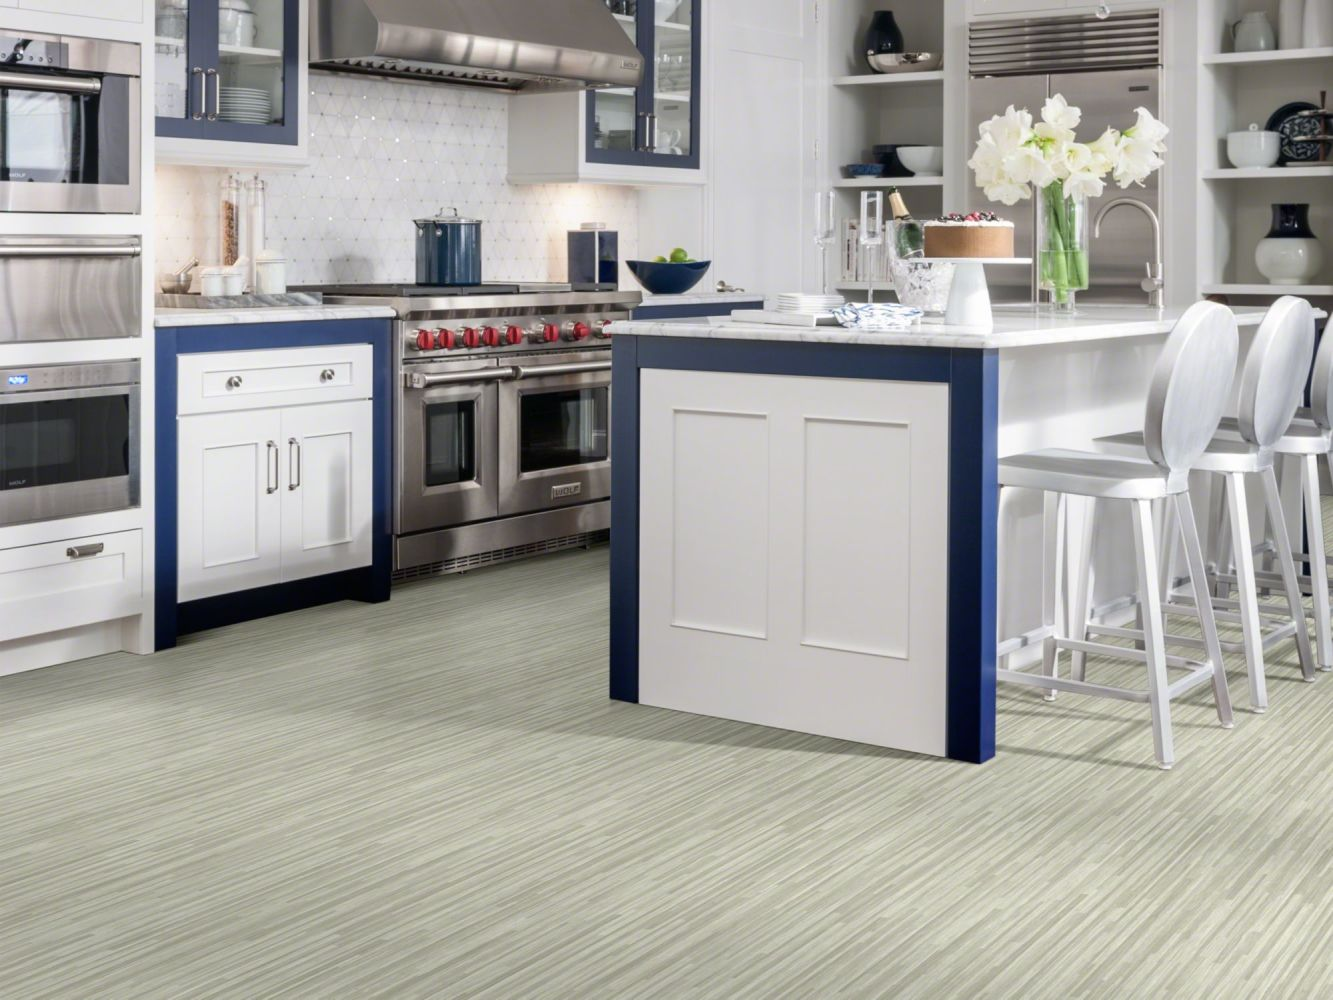 Shaw Floors Resilient Property Solutions Compact 12 Loughlin 00536_VG061